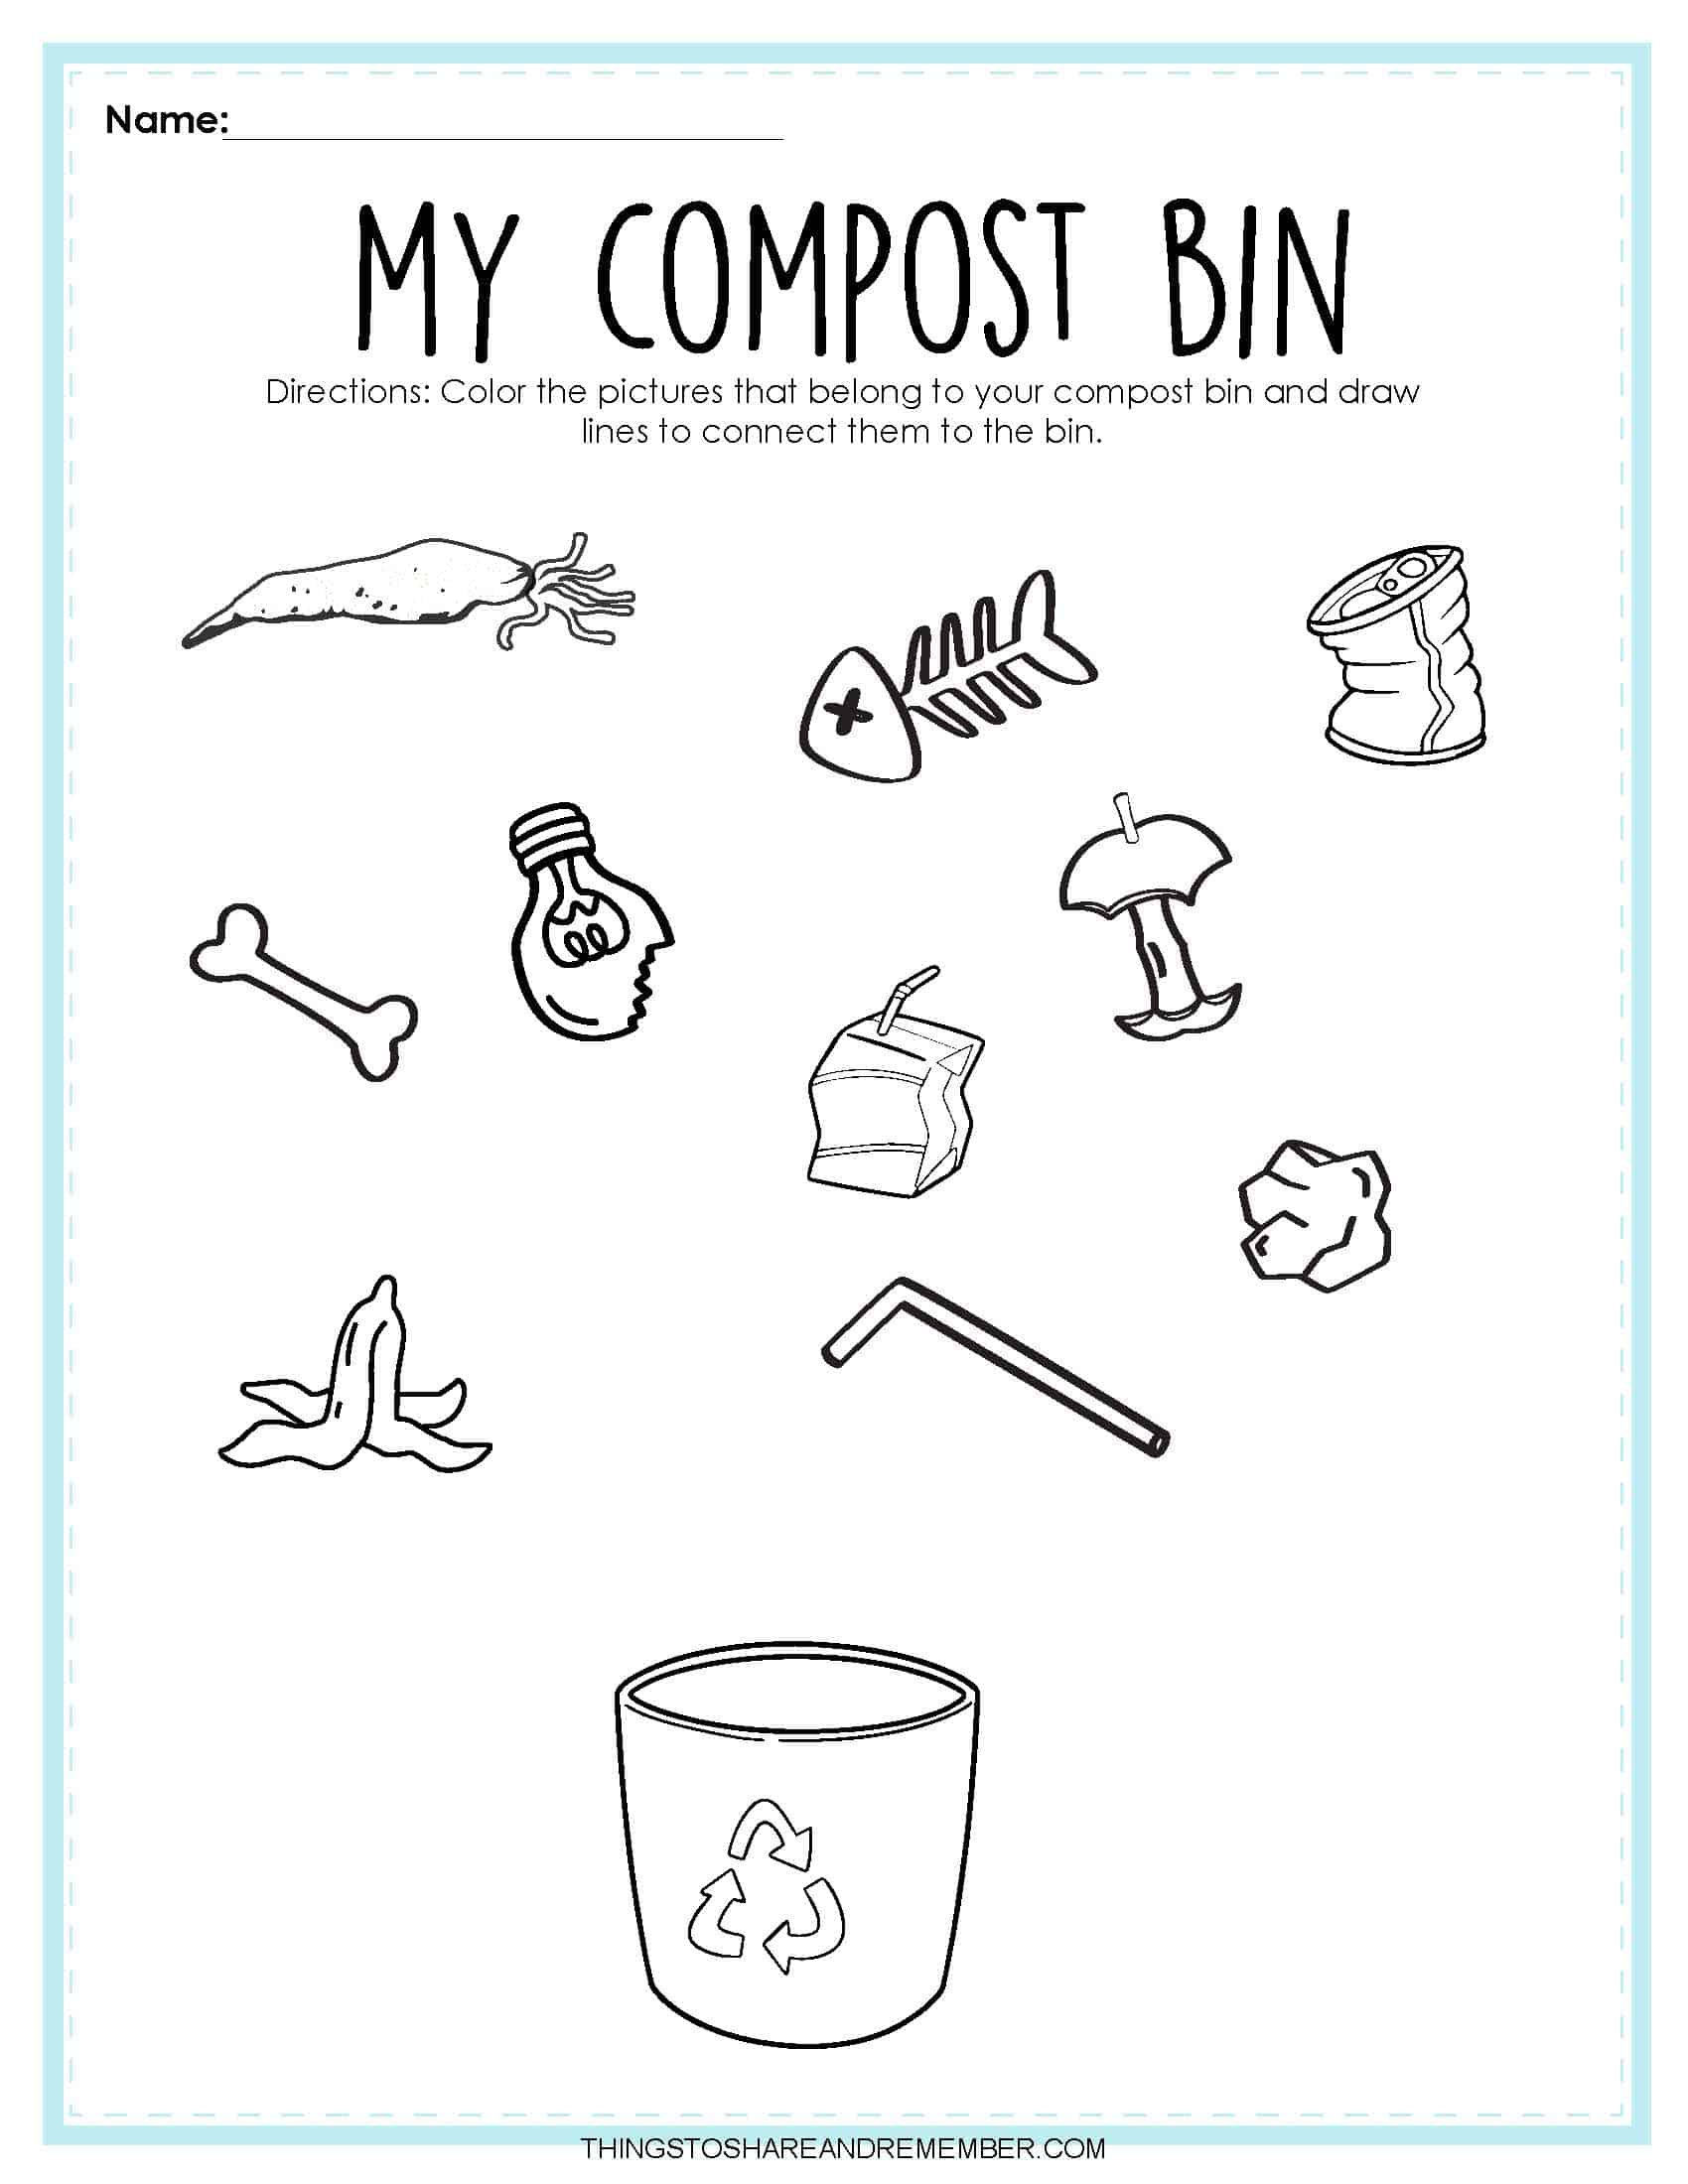 Recycling Activities Printables Share Amp Remember